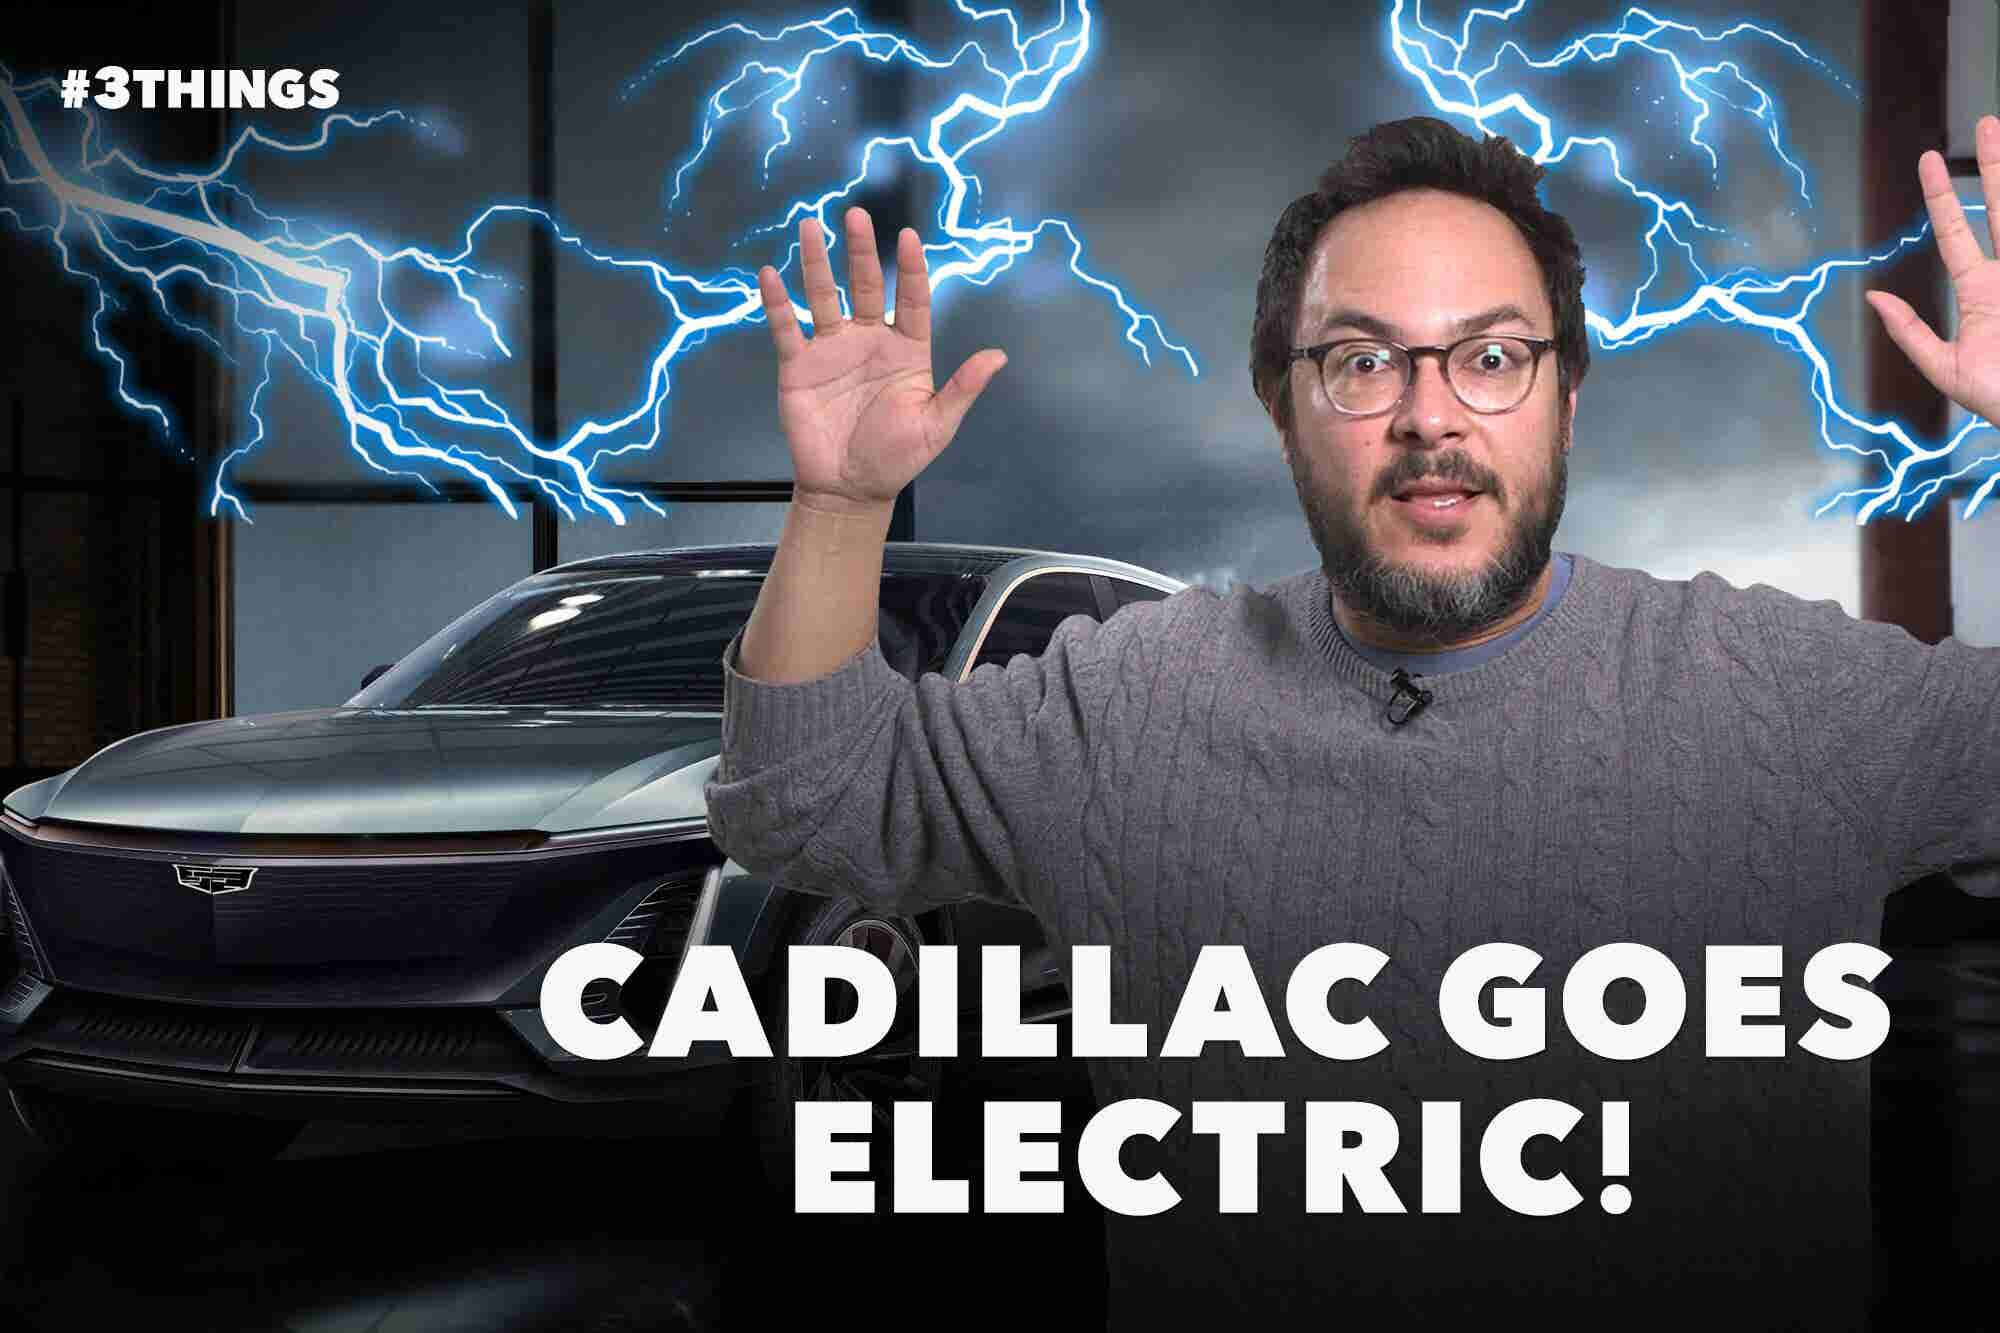 Cadillac Reveals Electric SUV, Choose Your Own Adventure Sues Netflix, and Kylie Jenner Is Beaten by an Egg (60-Second Video)